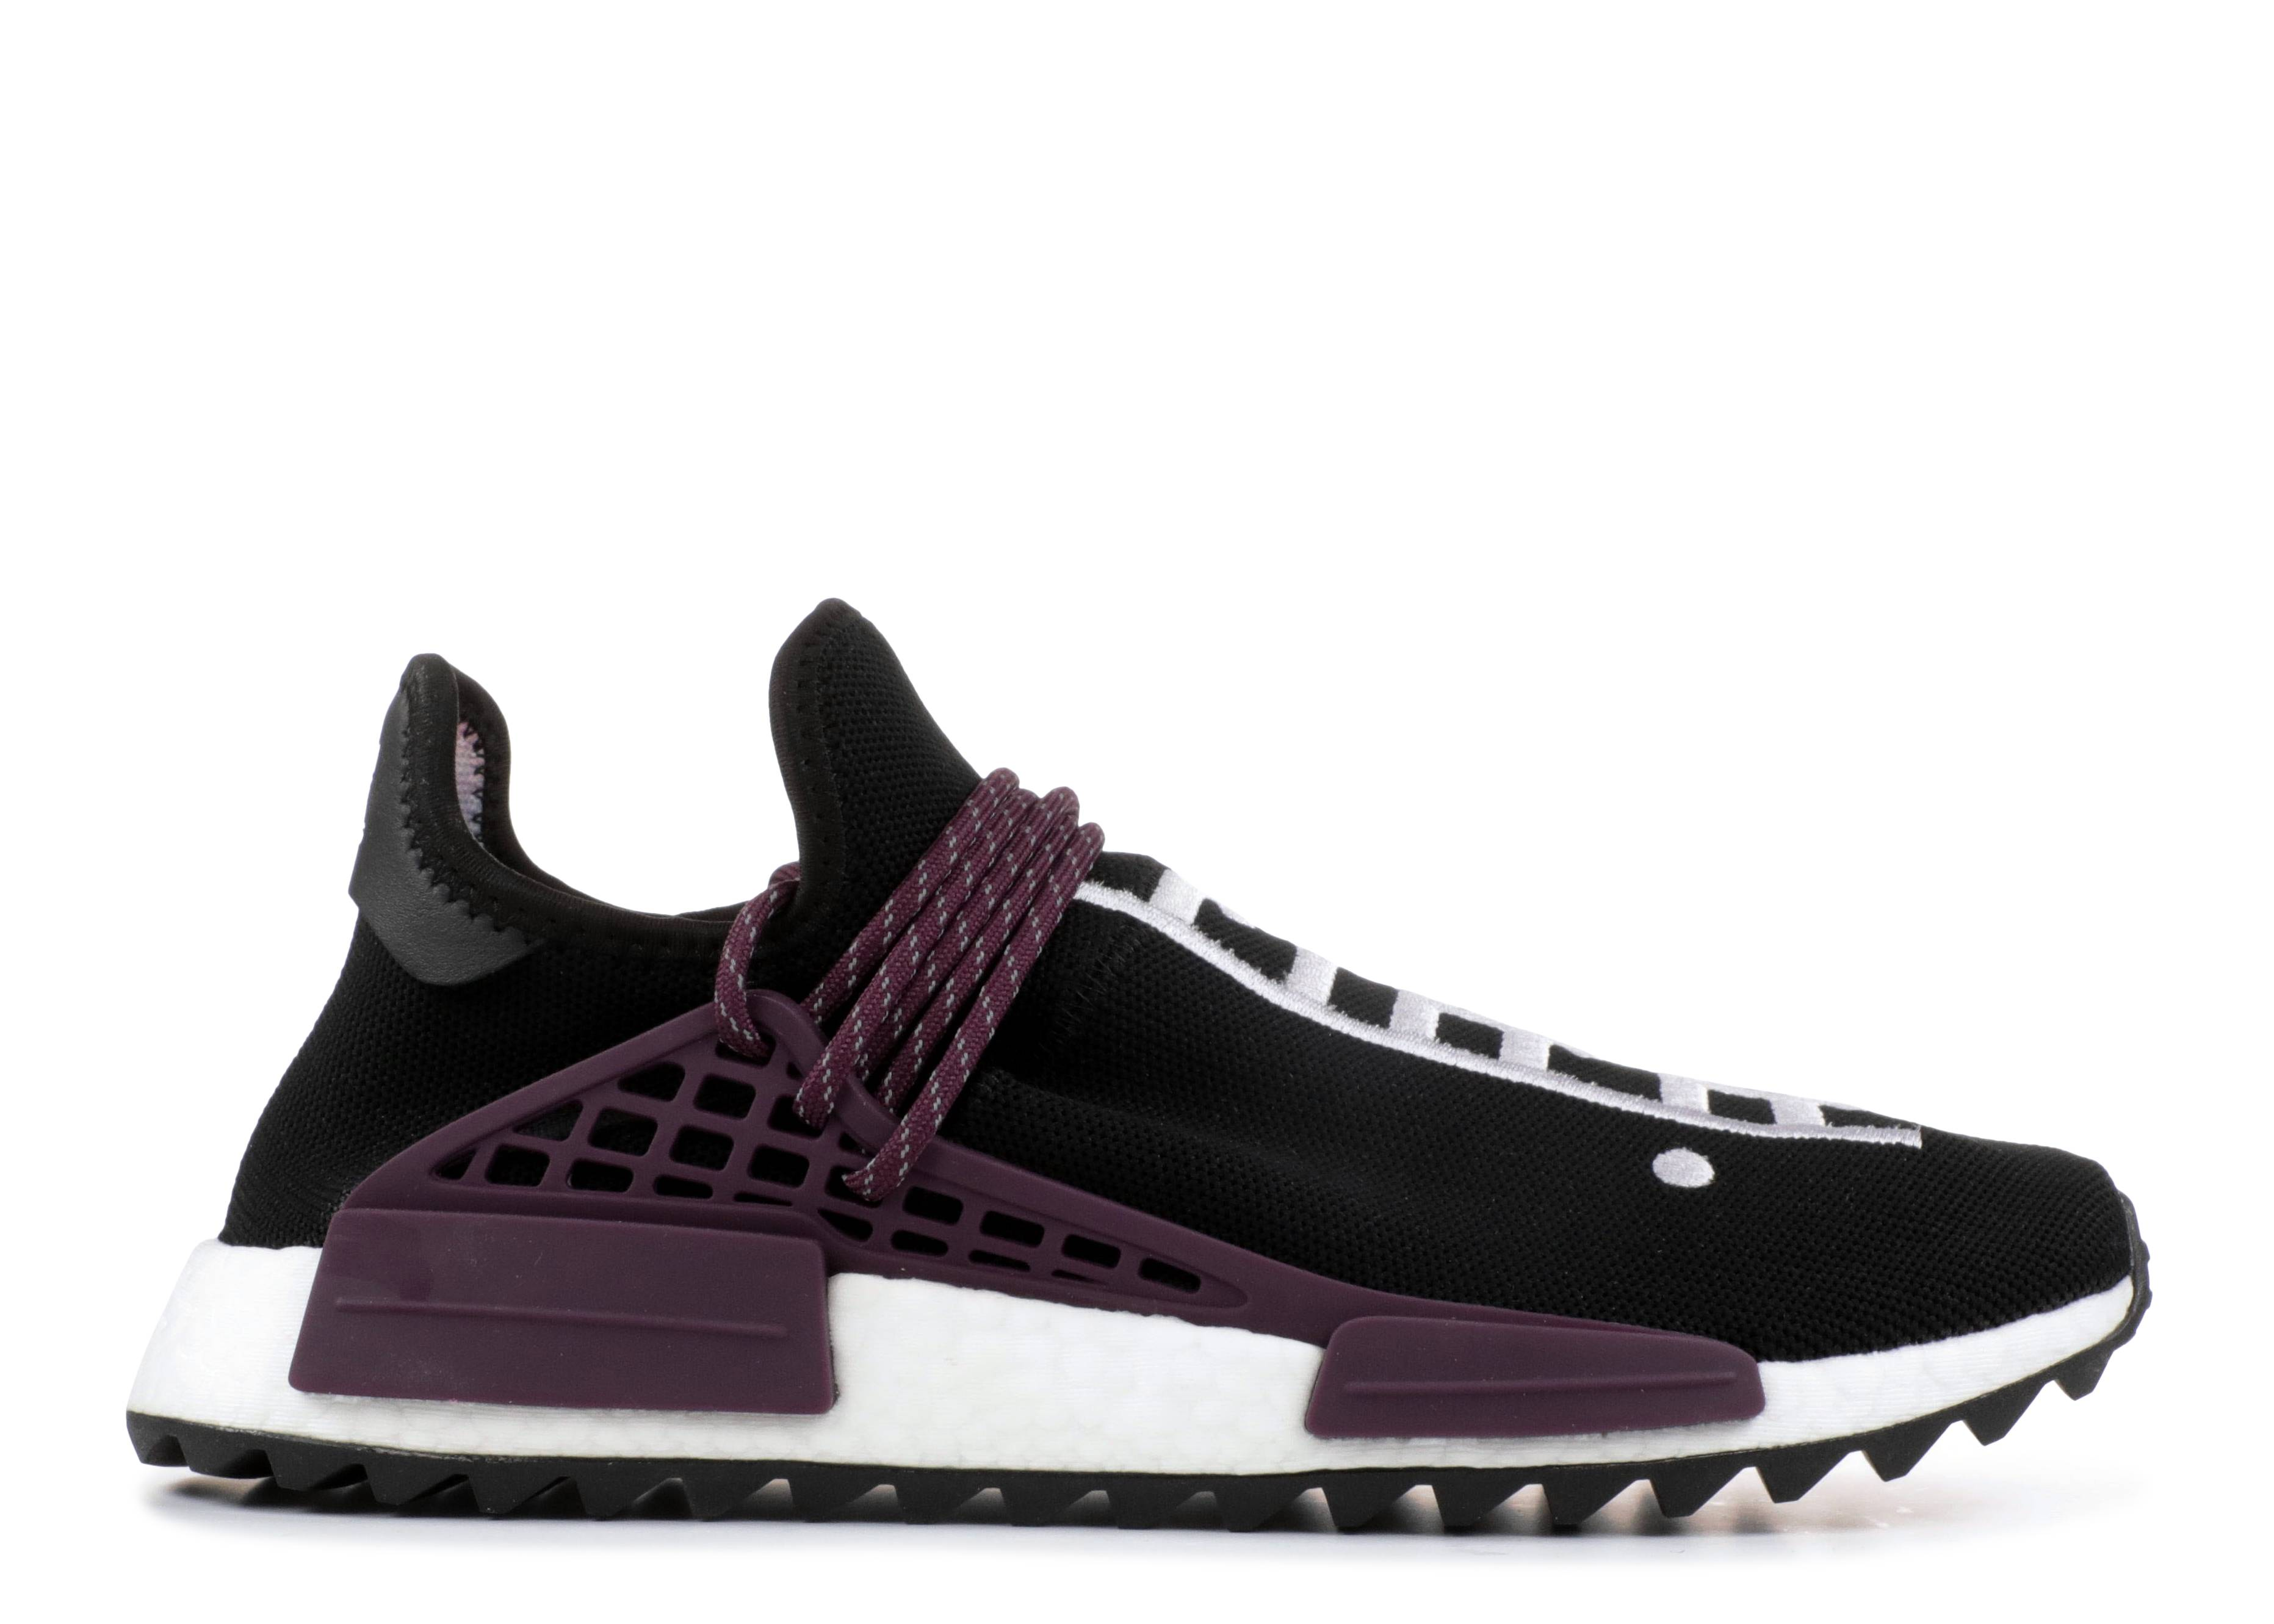 adidas PW Human Race NMD TR 'Equality' - AC7033 - Size - 12 -